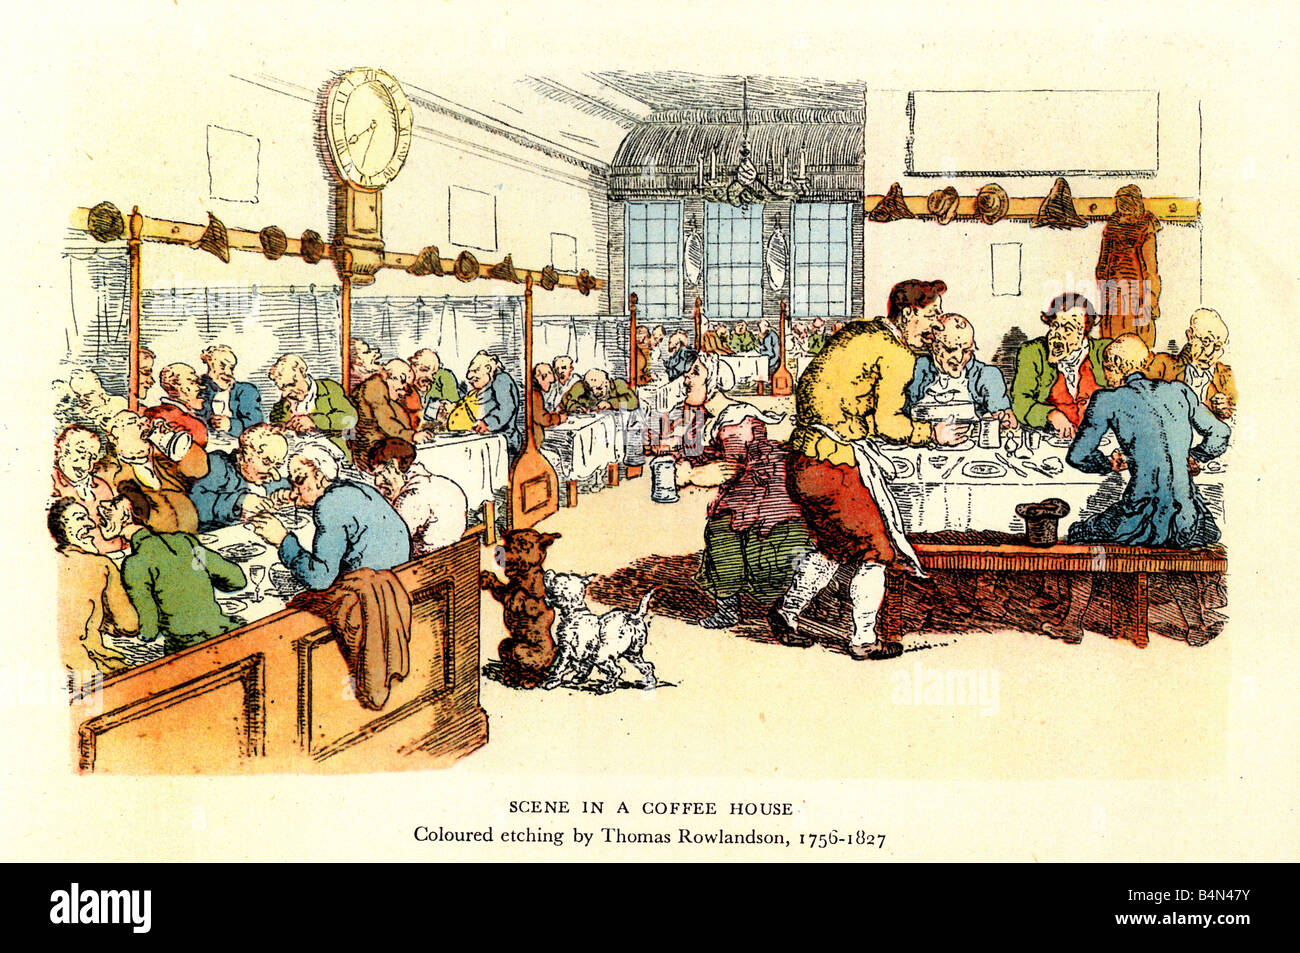 Coffee House by Rowlandson the English caricaturist turns his pen to the centre of London life in the 18th Century - Stock Image